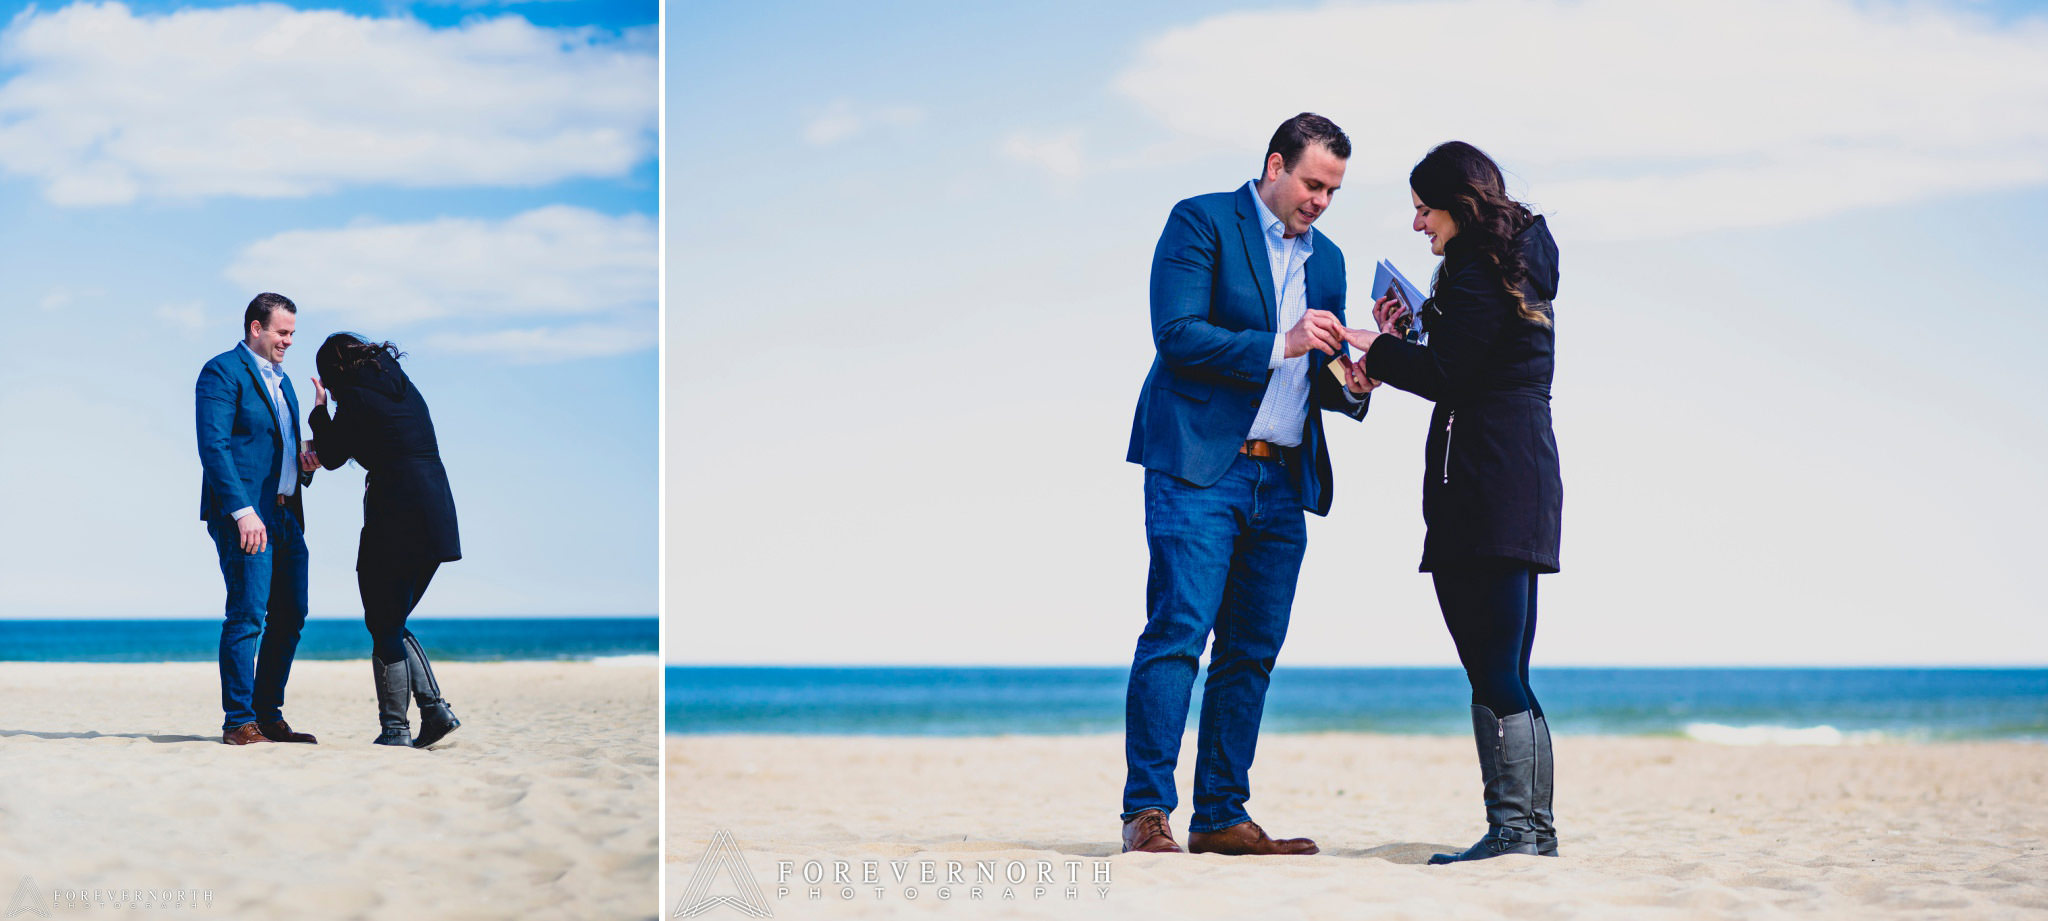 Schall-Forever-North-Photography-Proposal-Engagement-Photographer-Manasquan-Beach-09.JPG